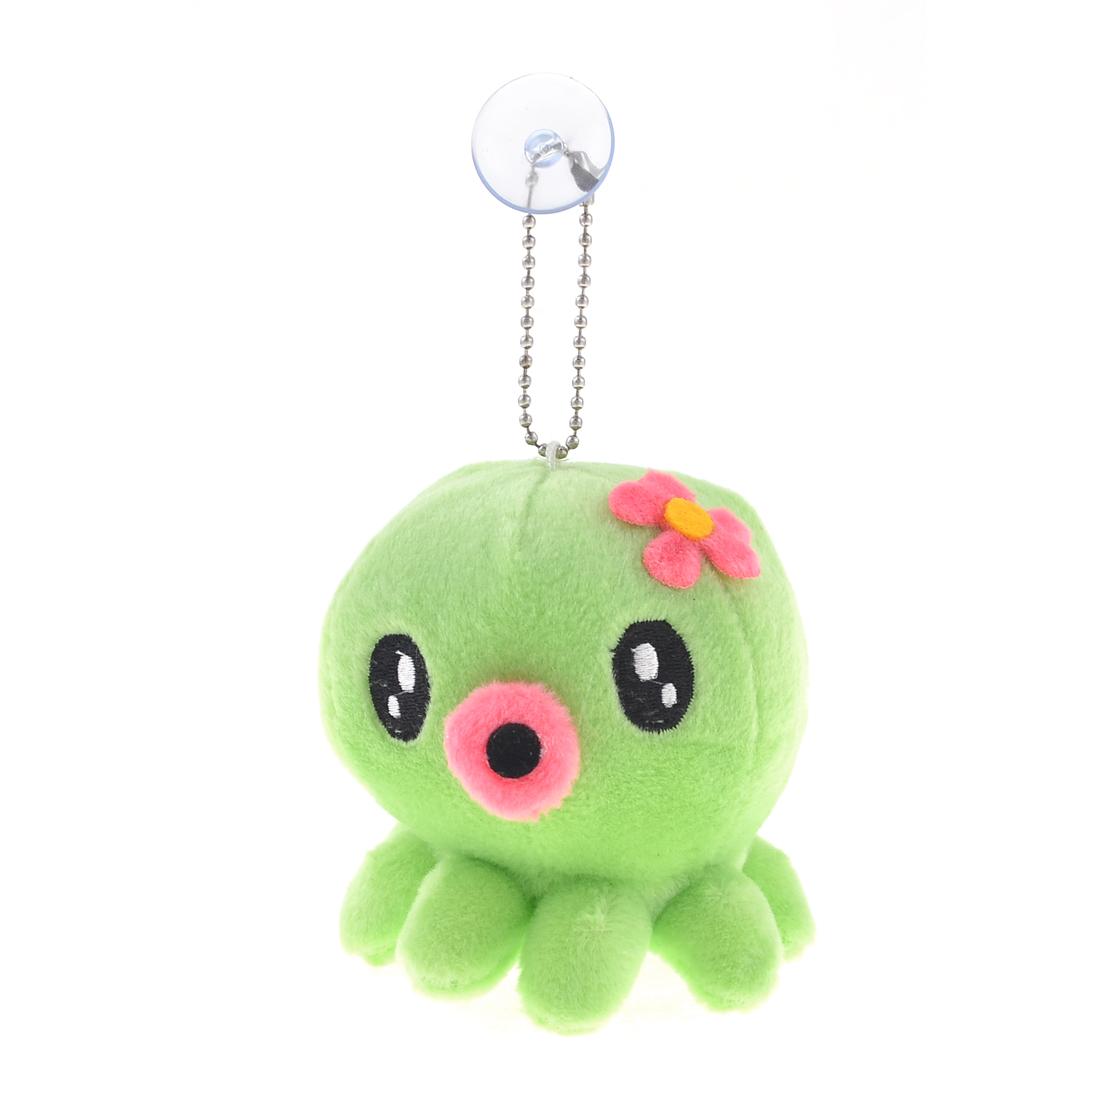 """Car Light Green Plush Octopus Suction Cup Toy Doll Pendant 6.3"""" Length"""